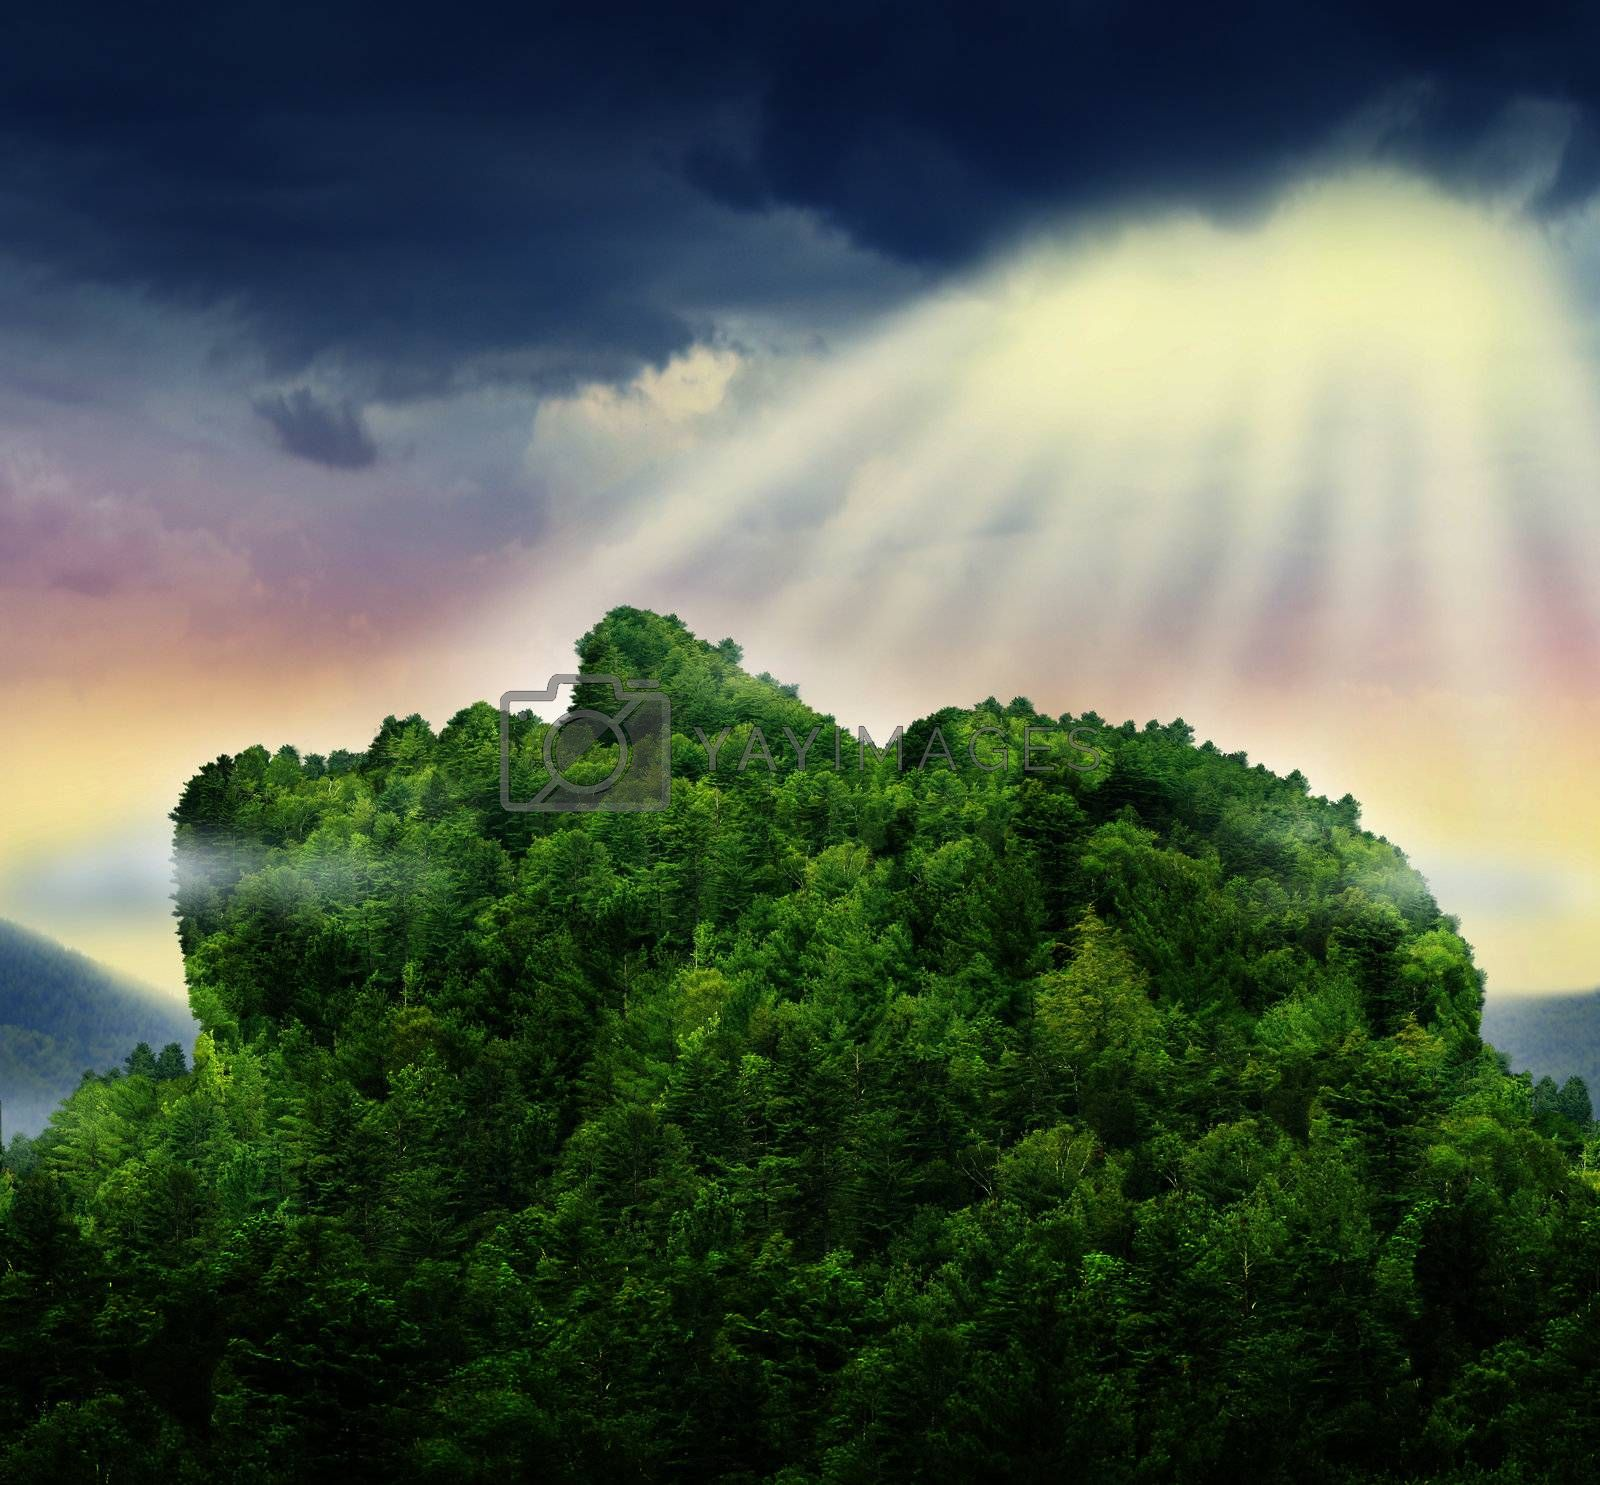 Human achievement and the power of personal success in business represented by a mountain of trees in the shape of a head and face with glowing sun light above the clouds as a symbol of hope for the future.